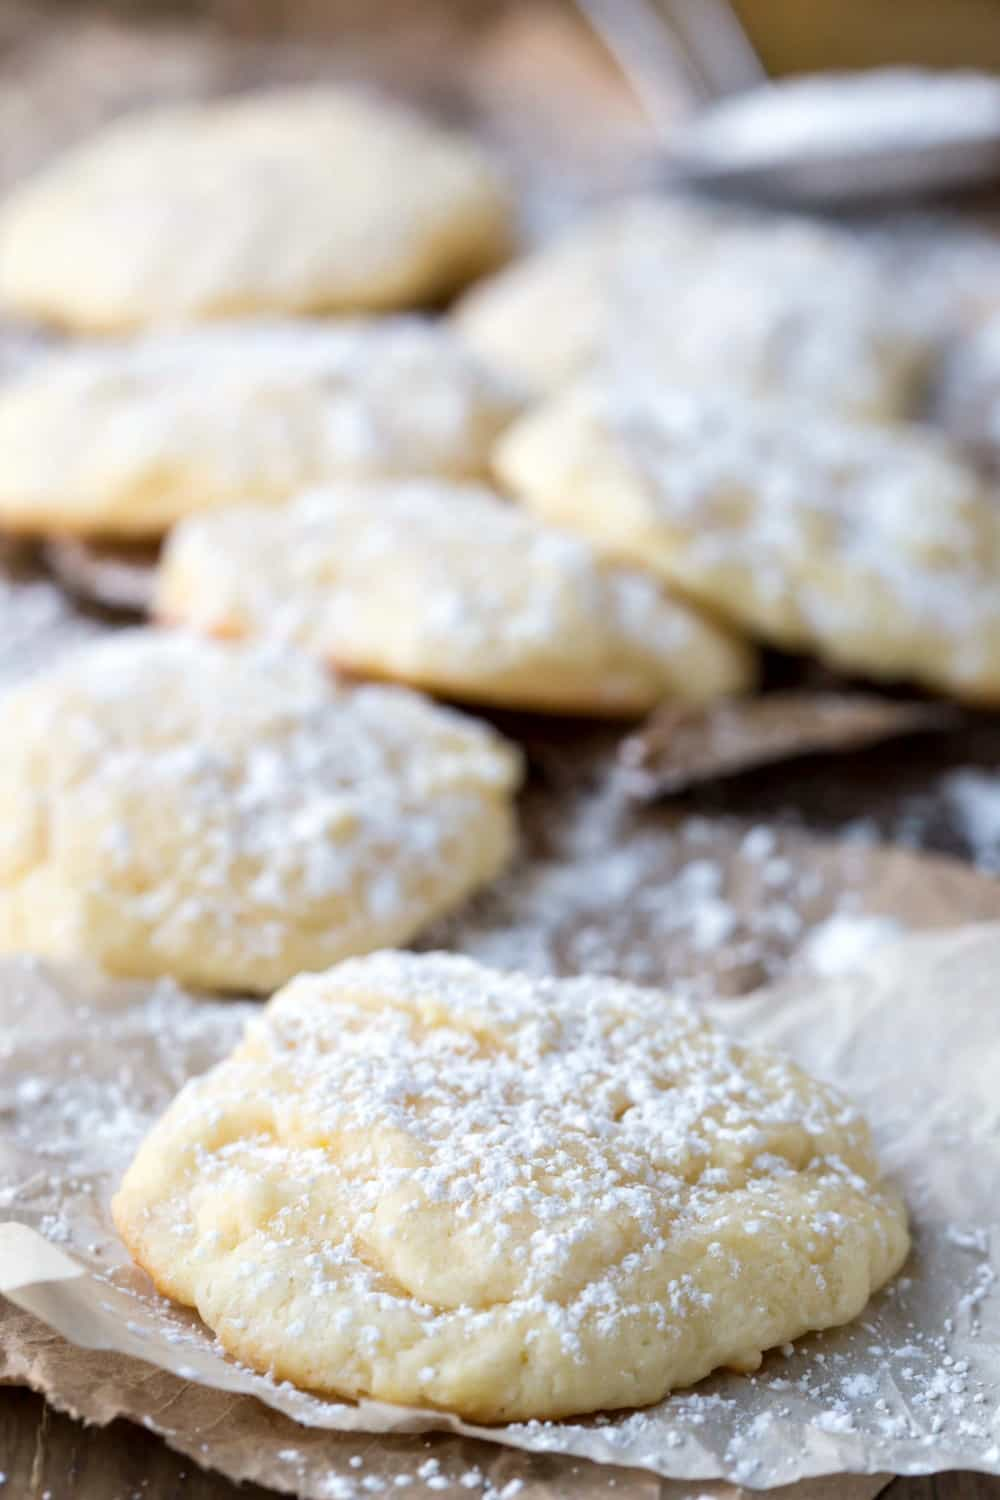 Tart and Tangy Lemon Cookie Recipe